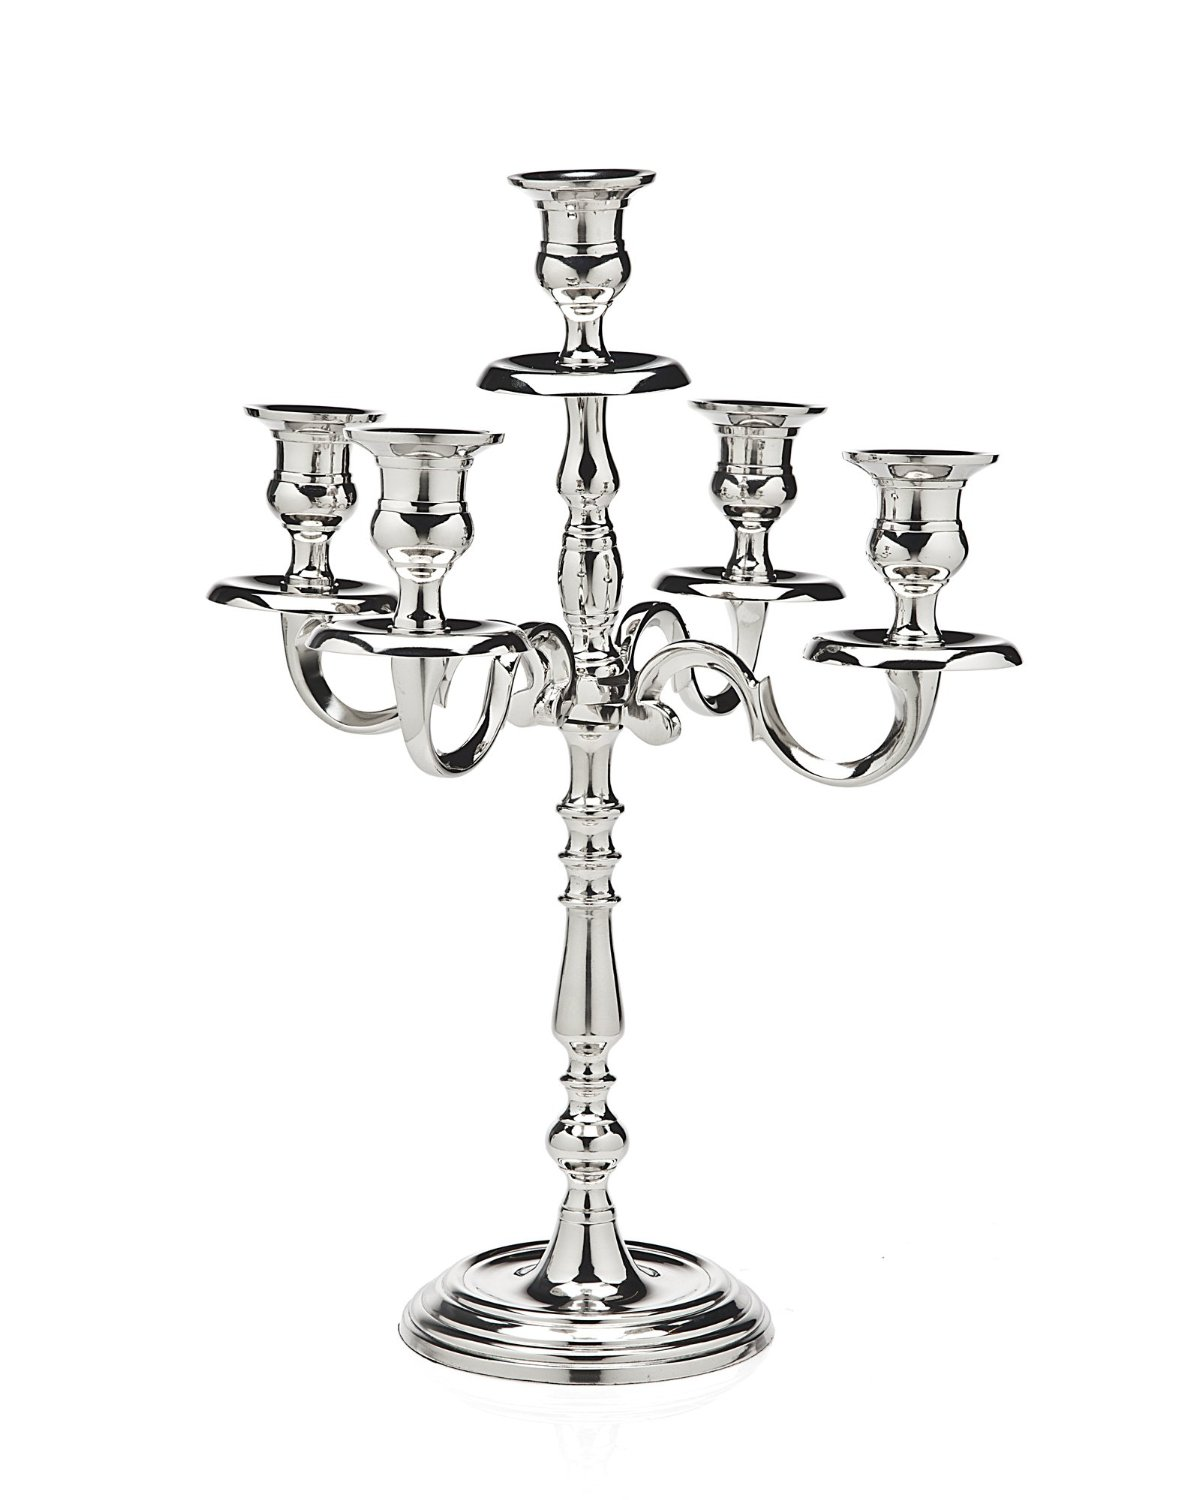 Classic Nickel Plated Candelabra